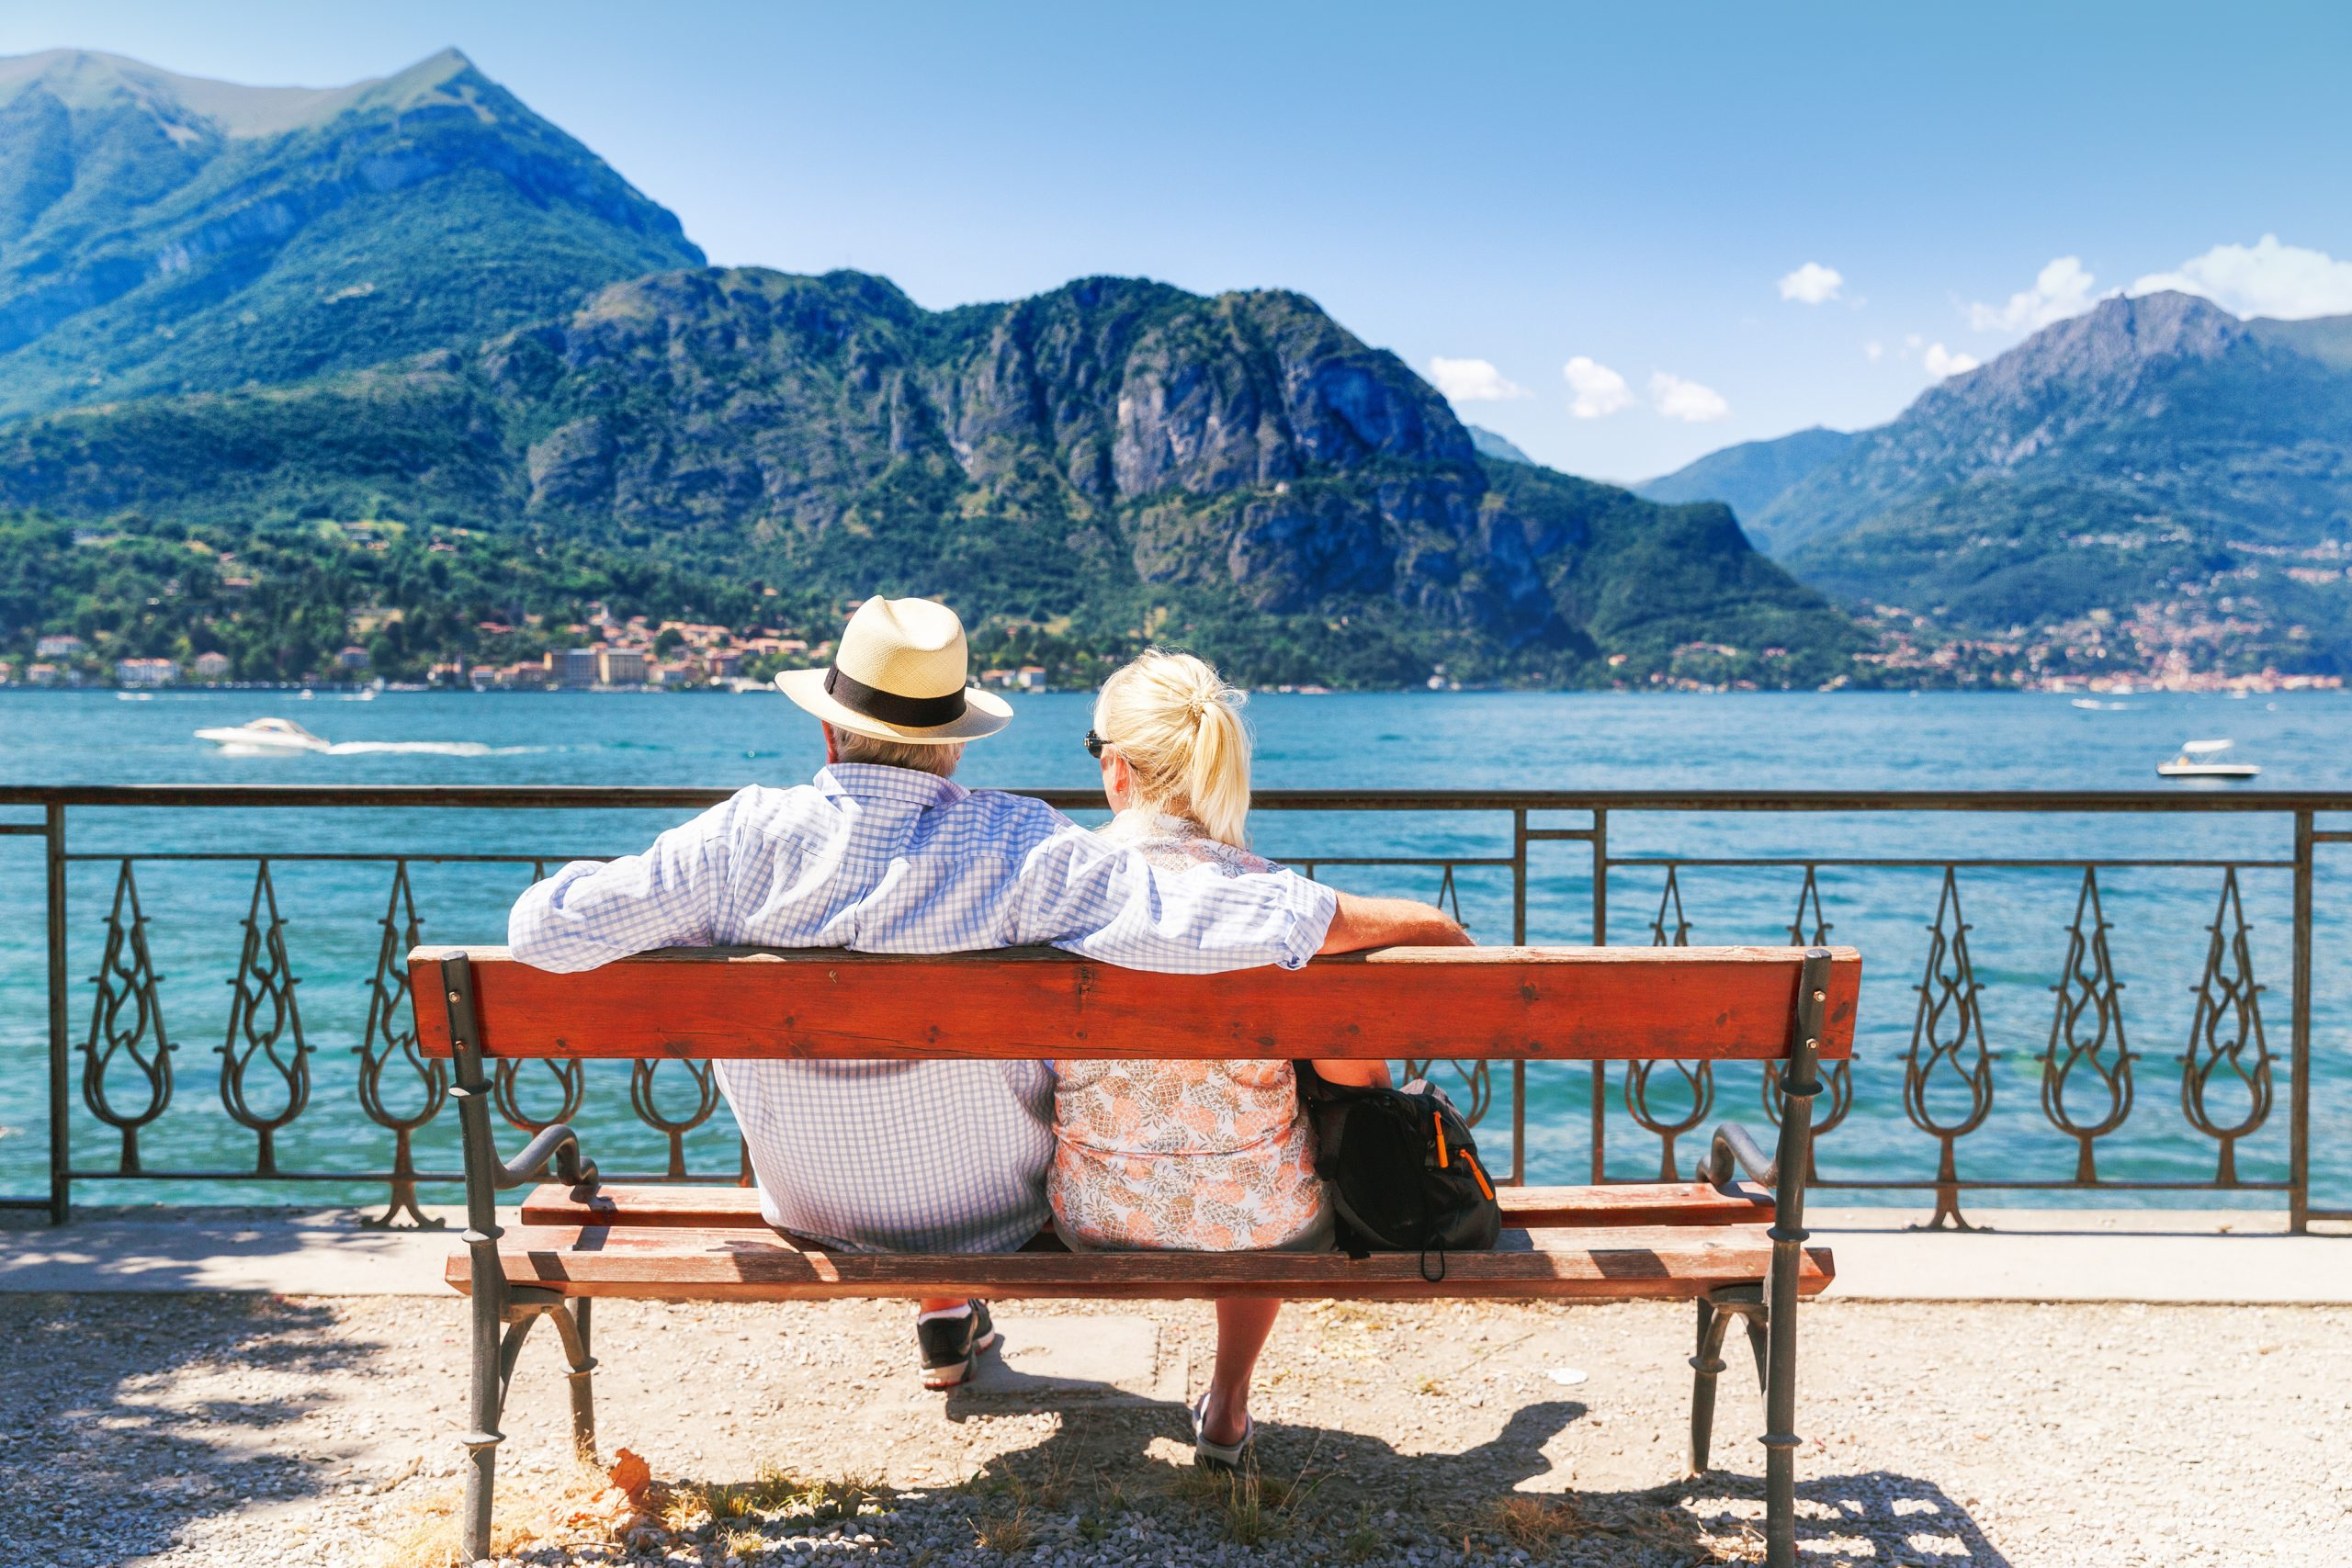 What Are the Top Senior Friendly Travel Destinations?